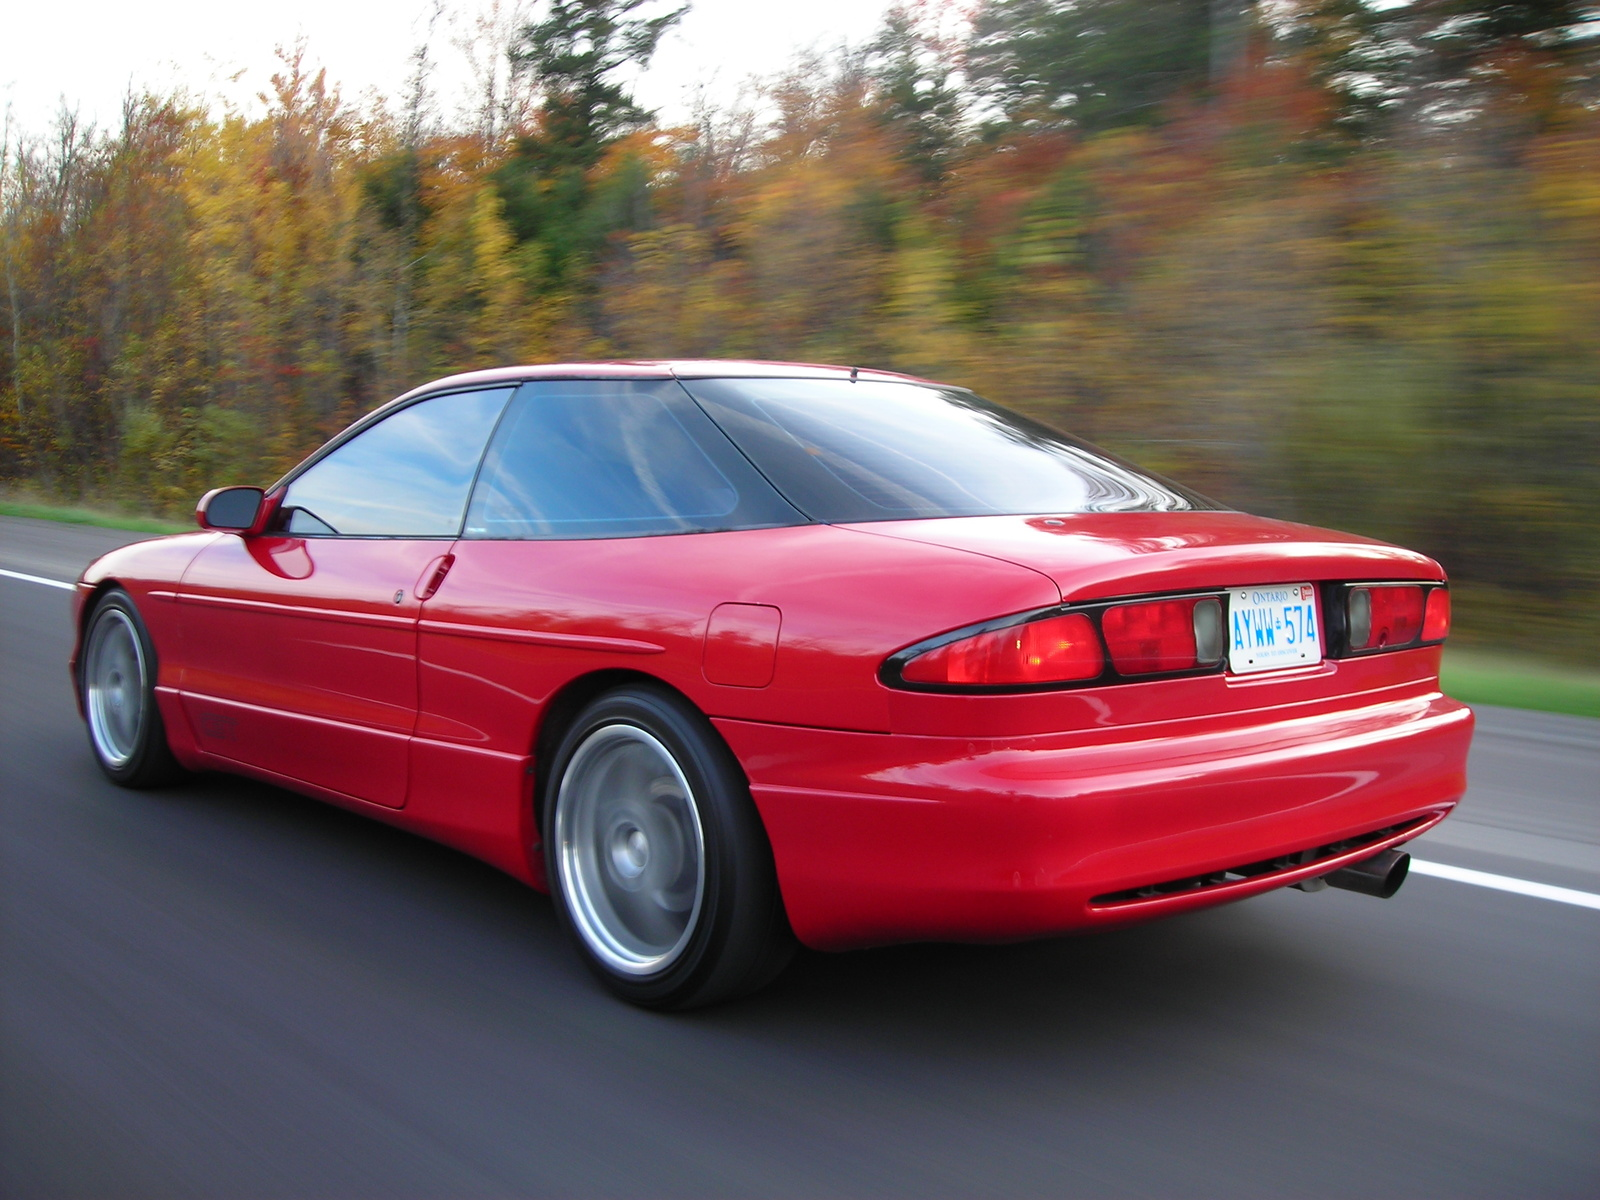 Ford Probe photo 07